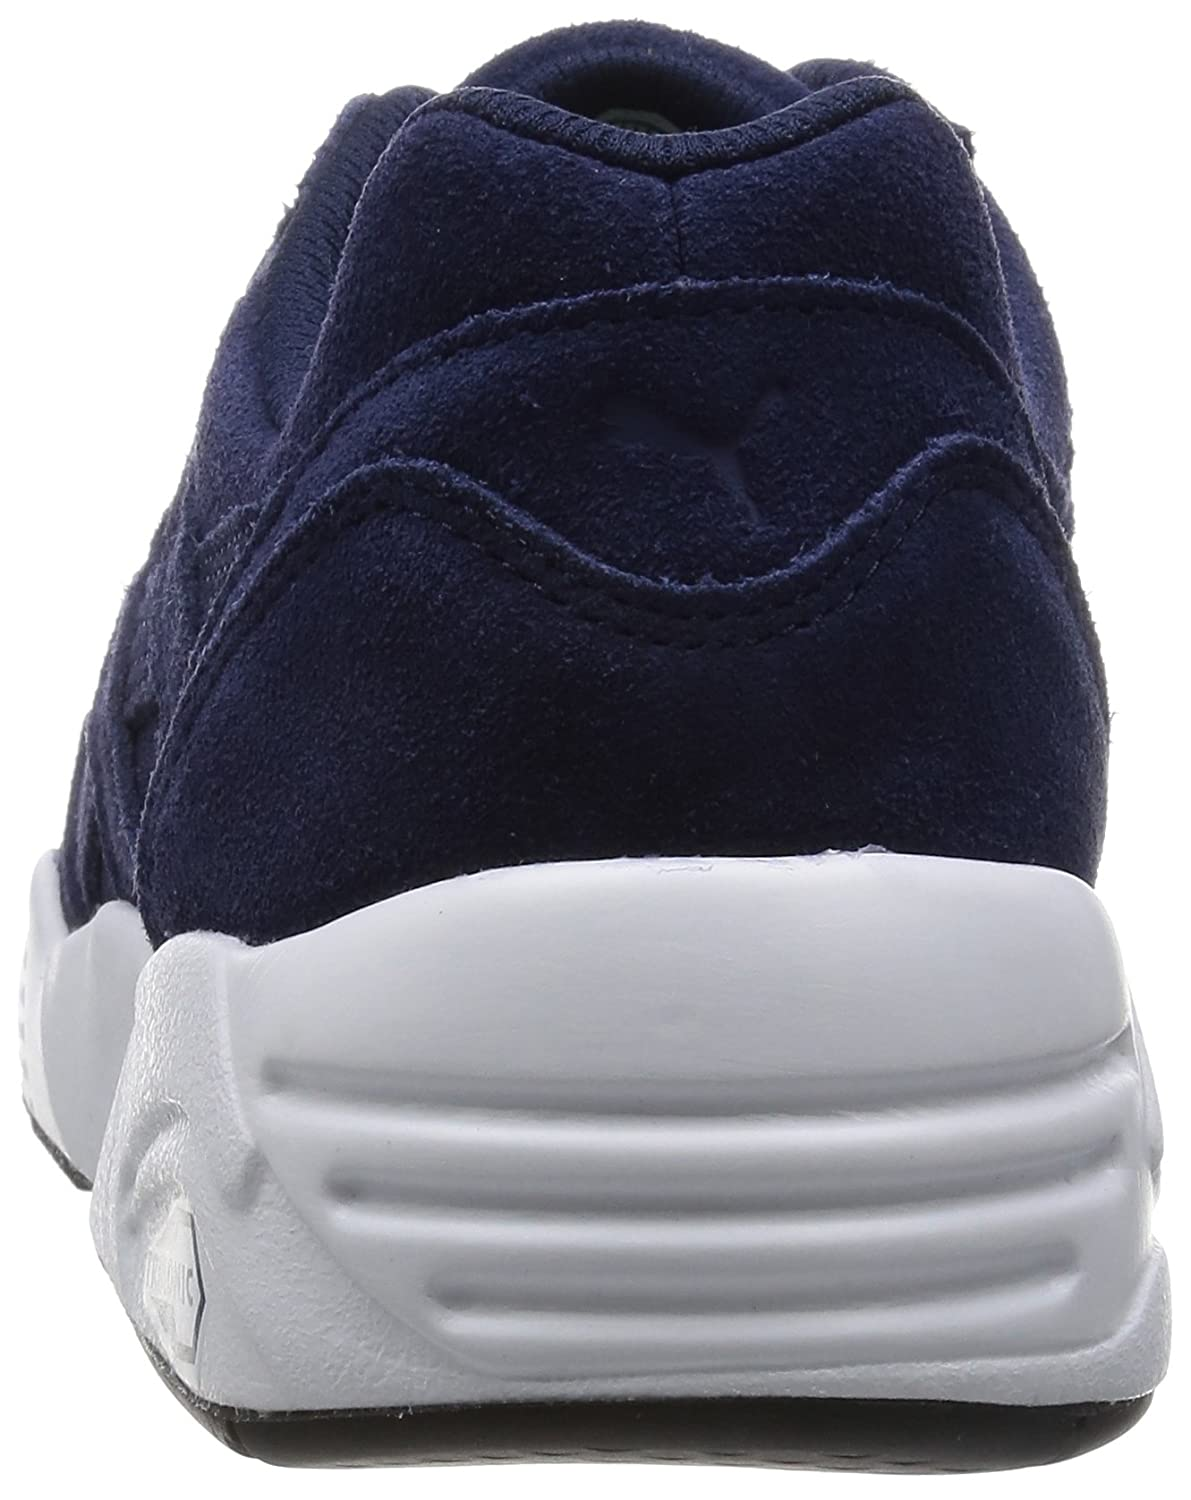 Puma R698 Allover, Sneakers Basses mixte adulte, Vert (Forest Night/White), 46